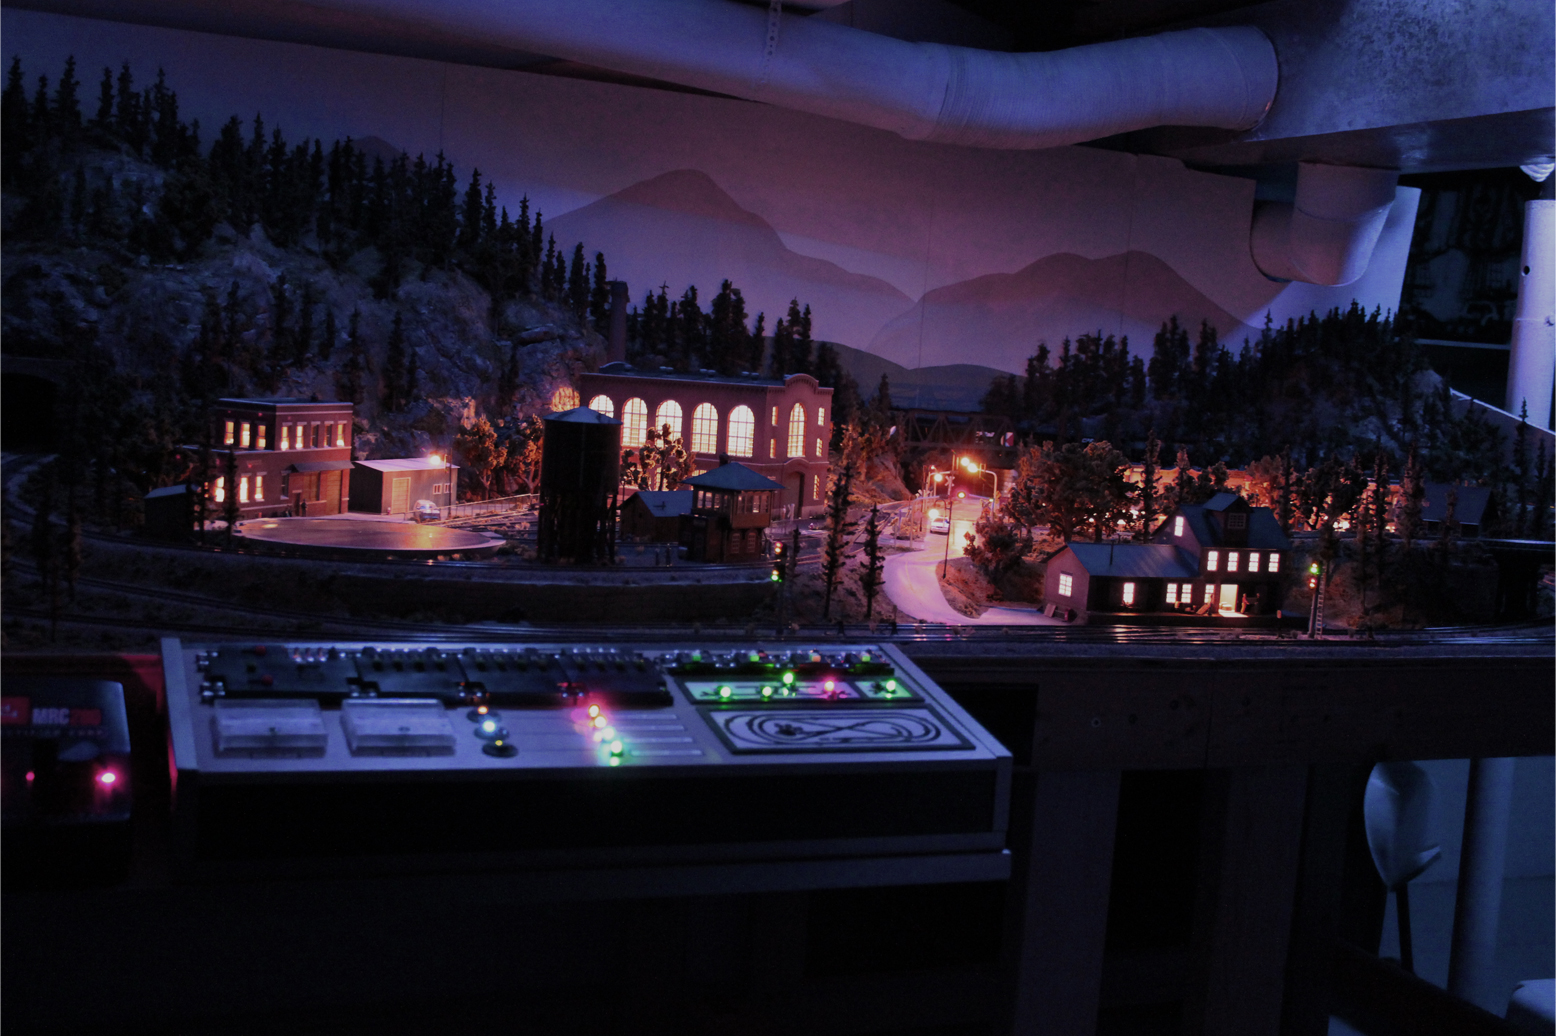 Tys Model Railroad Lighting Day Night More Train Circuits Led Flashing Lights Models Hobby Overview Of My Layout In Mode